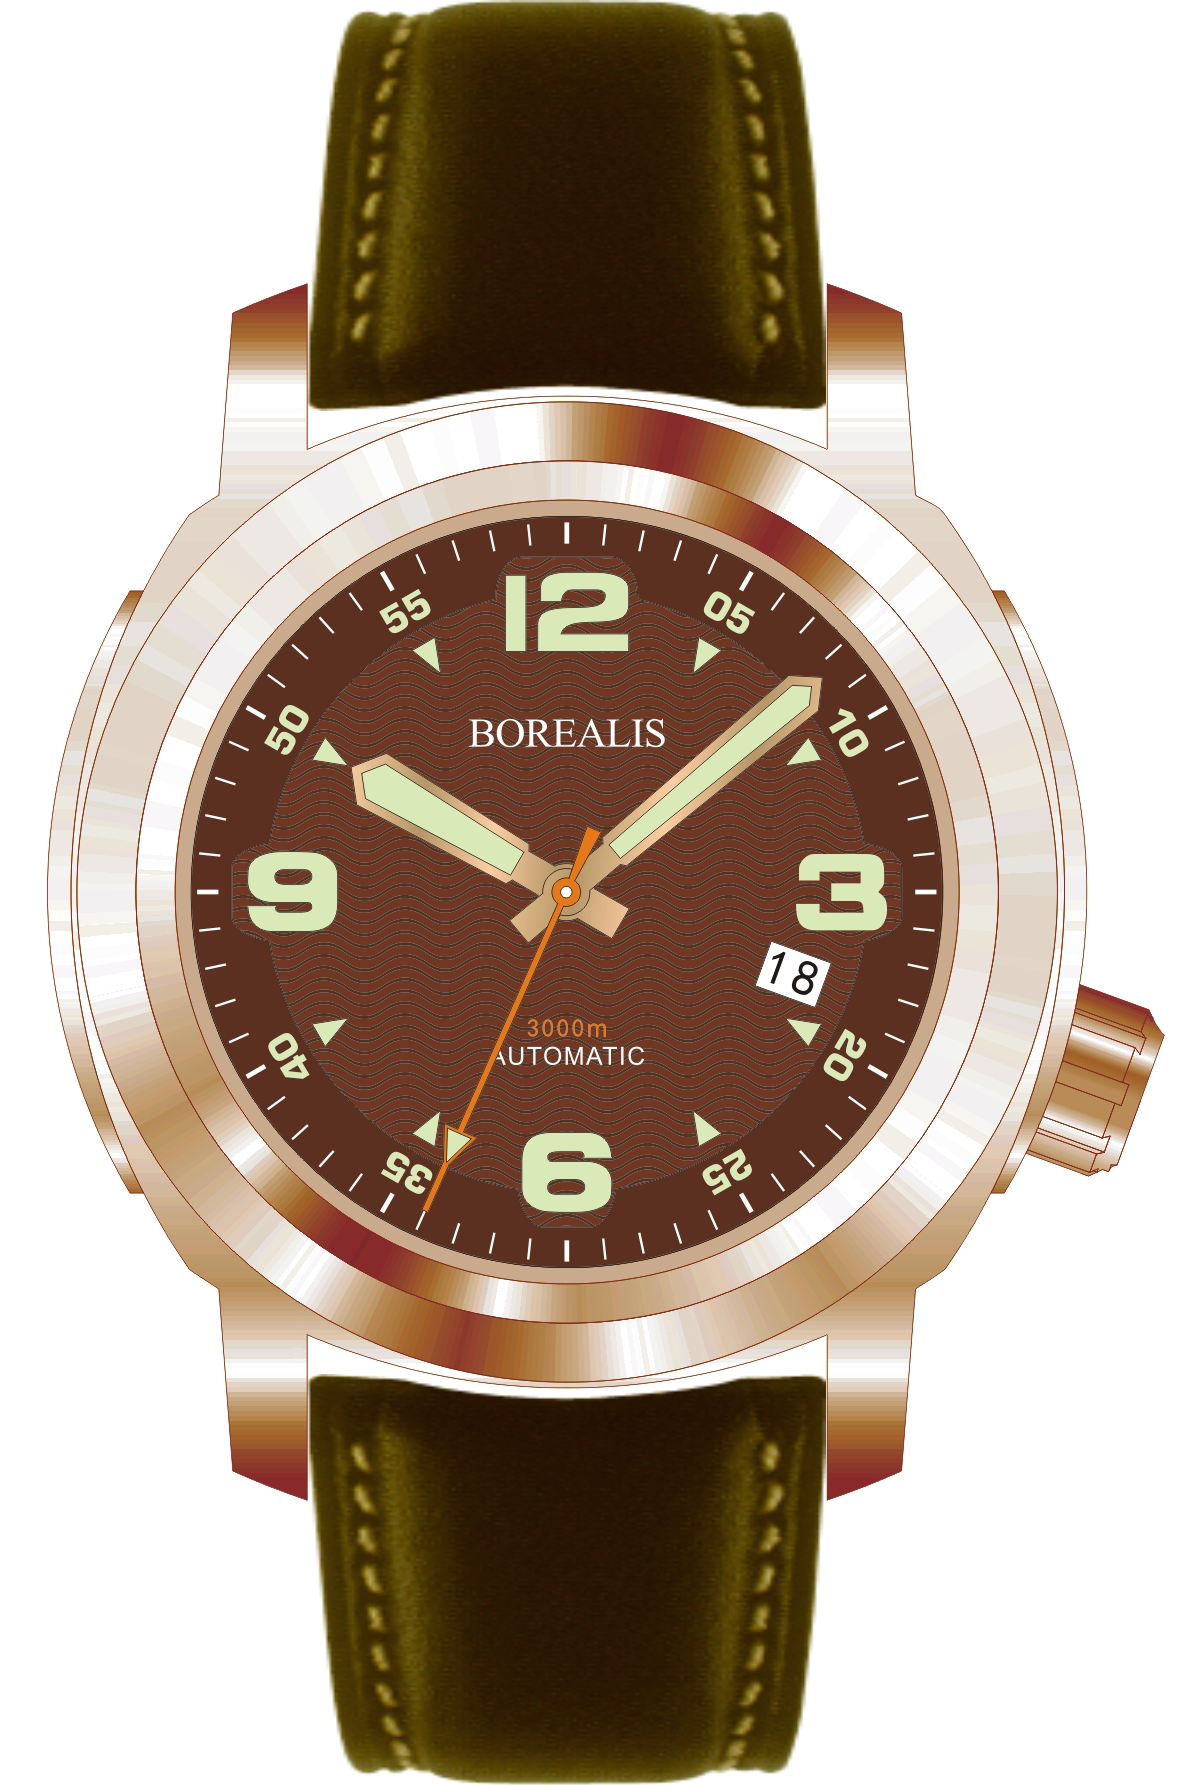 Borealis Batial Bronze CuSn8 Brown 3000m Miyota 9015 Automatic Diver Watch With Date Display BBCUSN8BROWNDATE